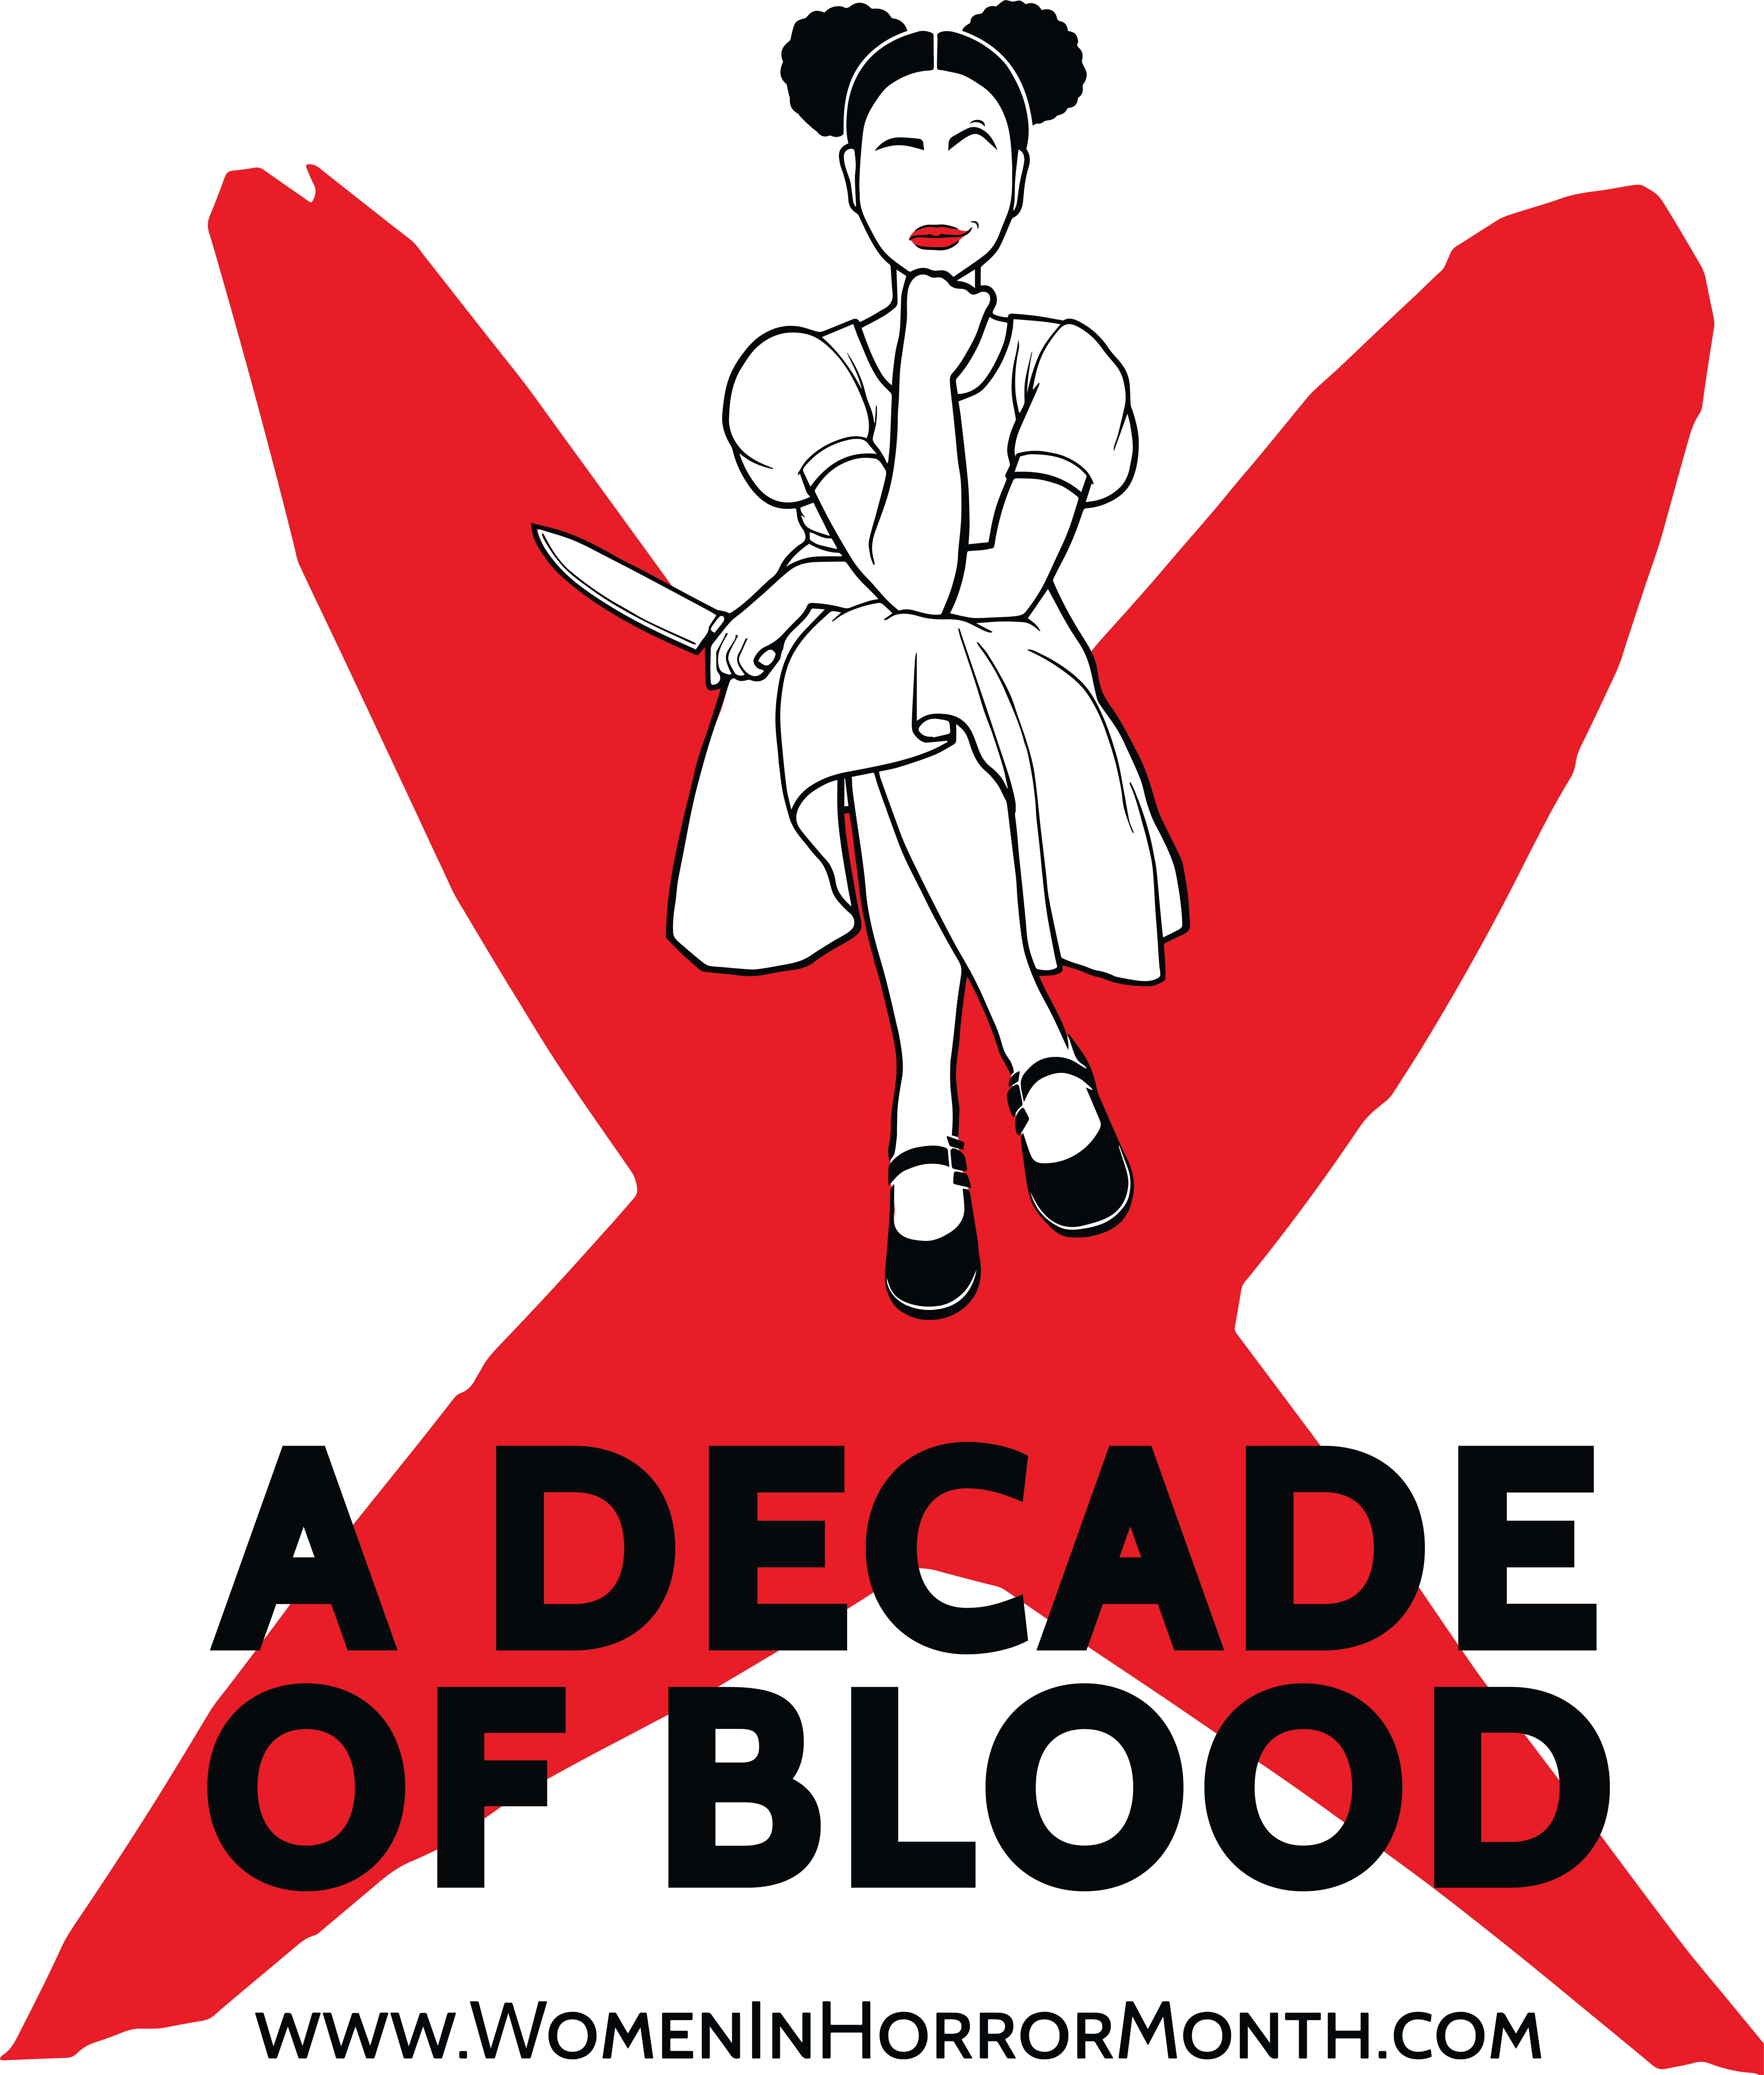 Women in Horror Month 10: A Decade of Blood